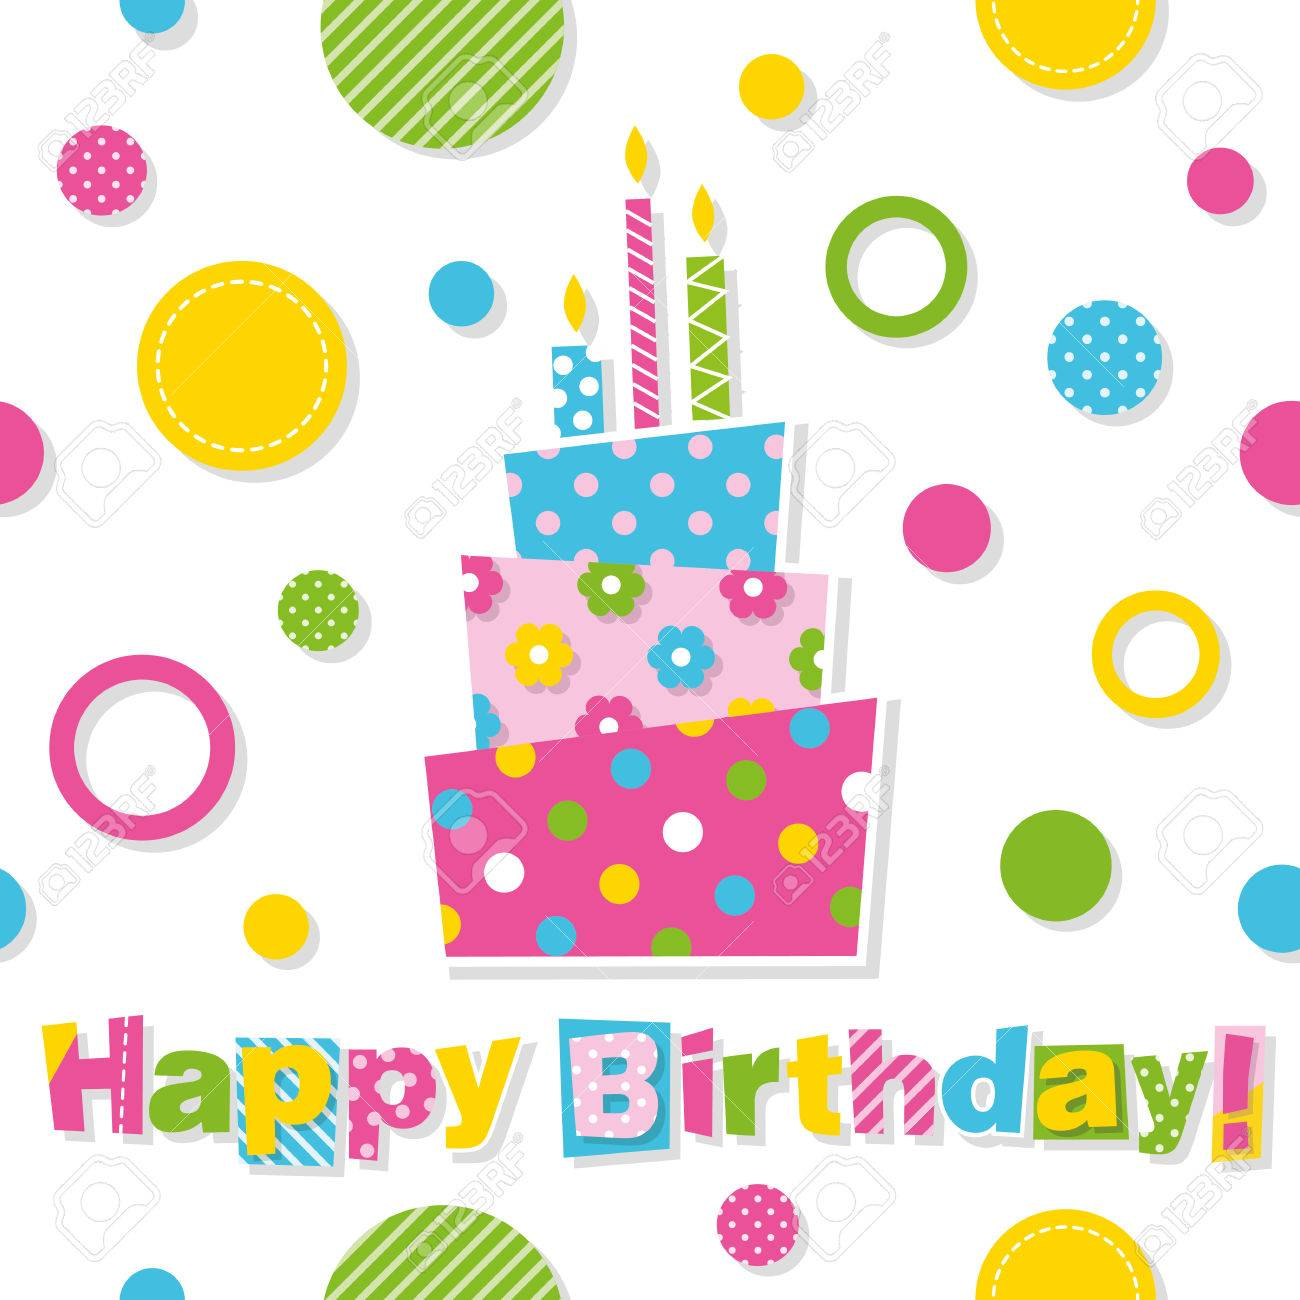 Happy Birthday Cake Greeting Card Royalty Free Cliparts Vectors